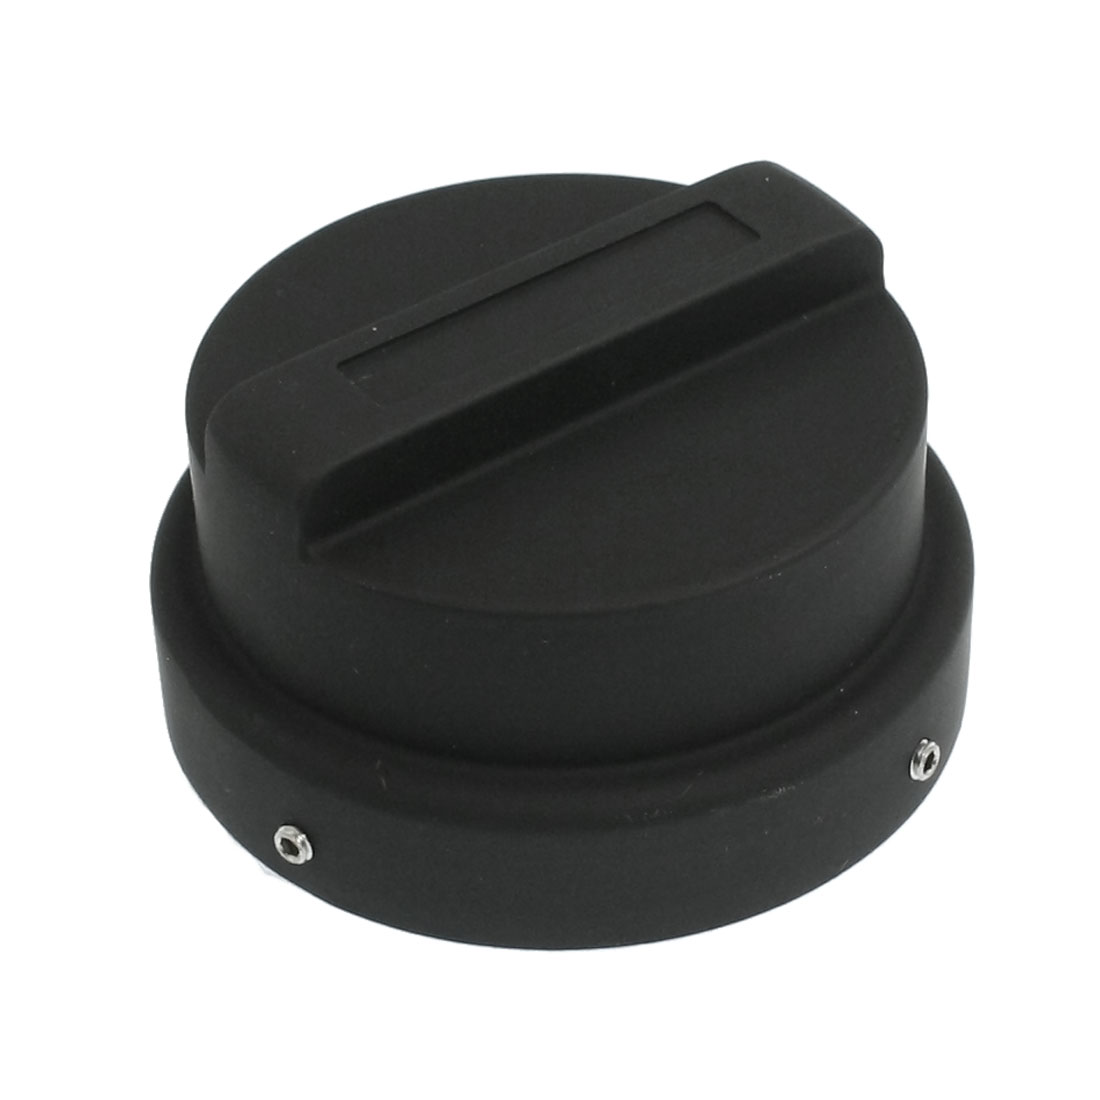 73mm Diameter Black Metal Engine Gas Oil Fuel Cap Cover Replacement